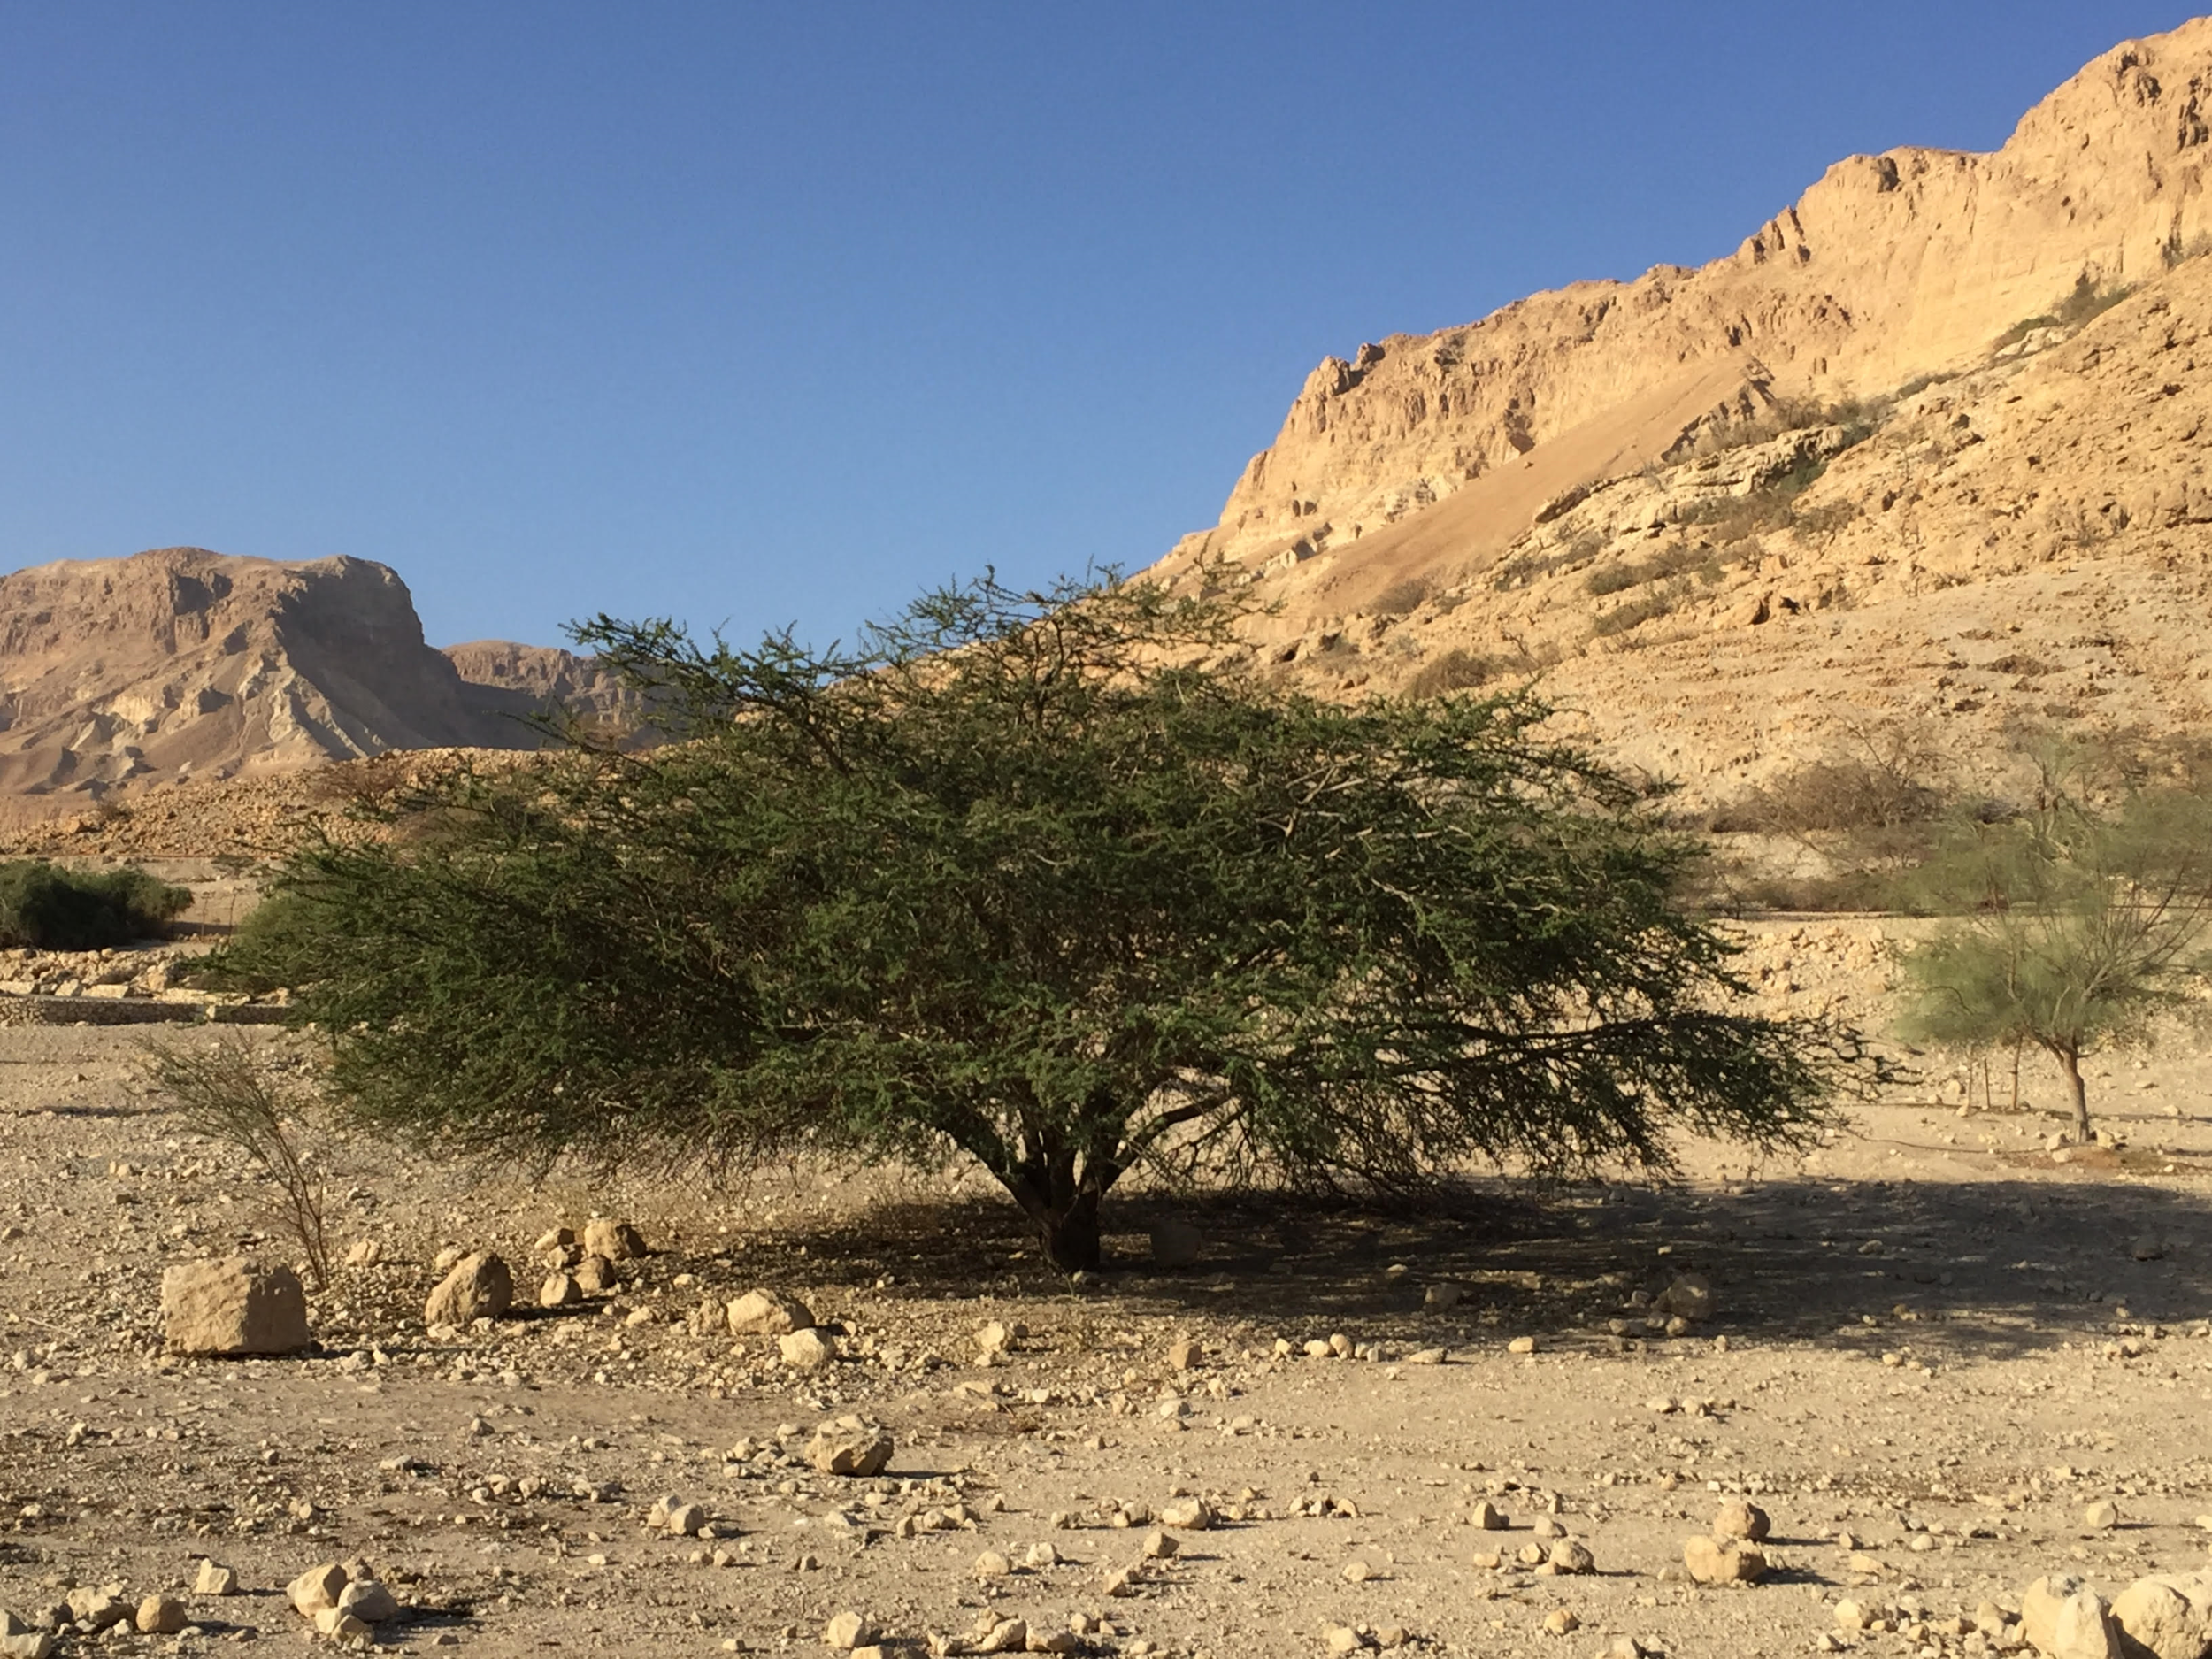 Acacia Tree in the Negev - photo by P. Schwartz